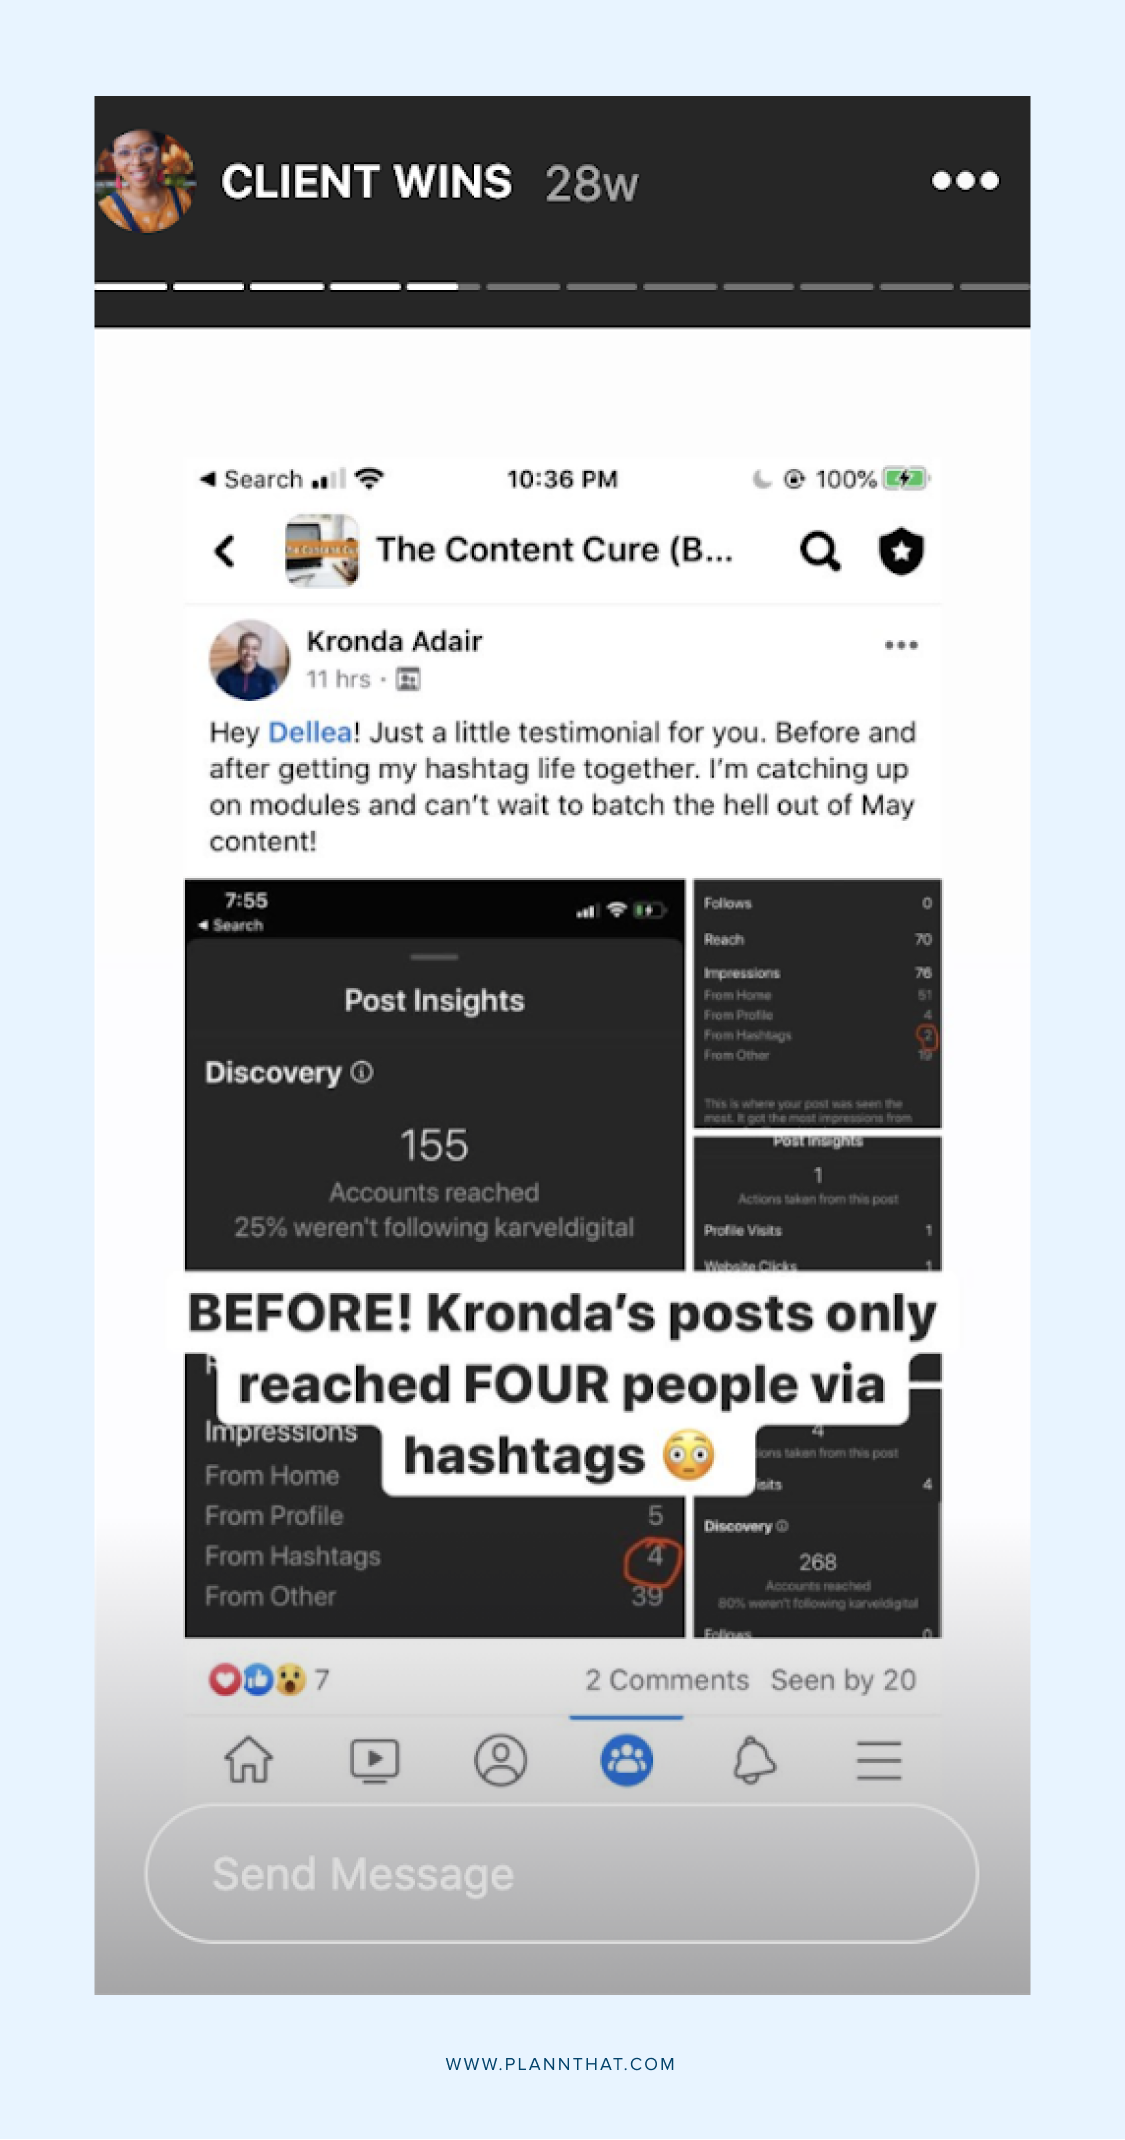 How to Sell on Instagram Stories: 9 Tips That Drive Sales